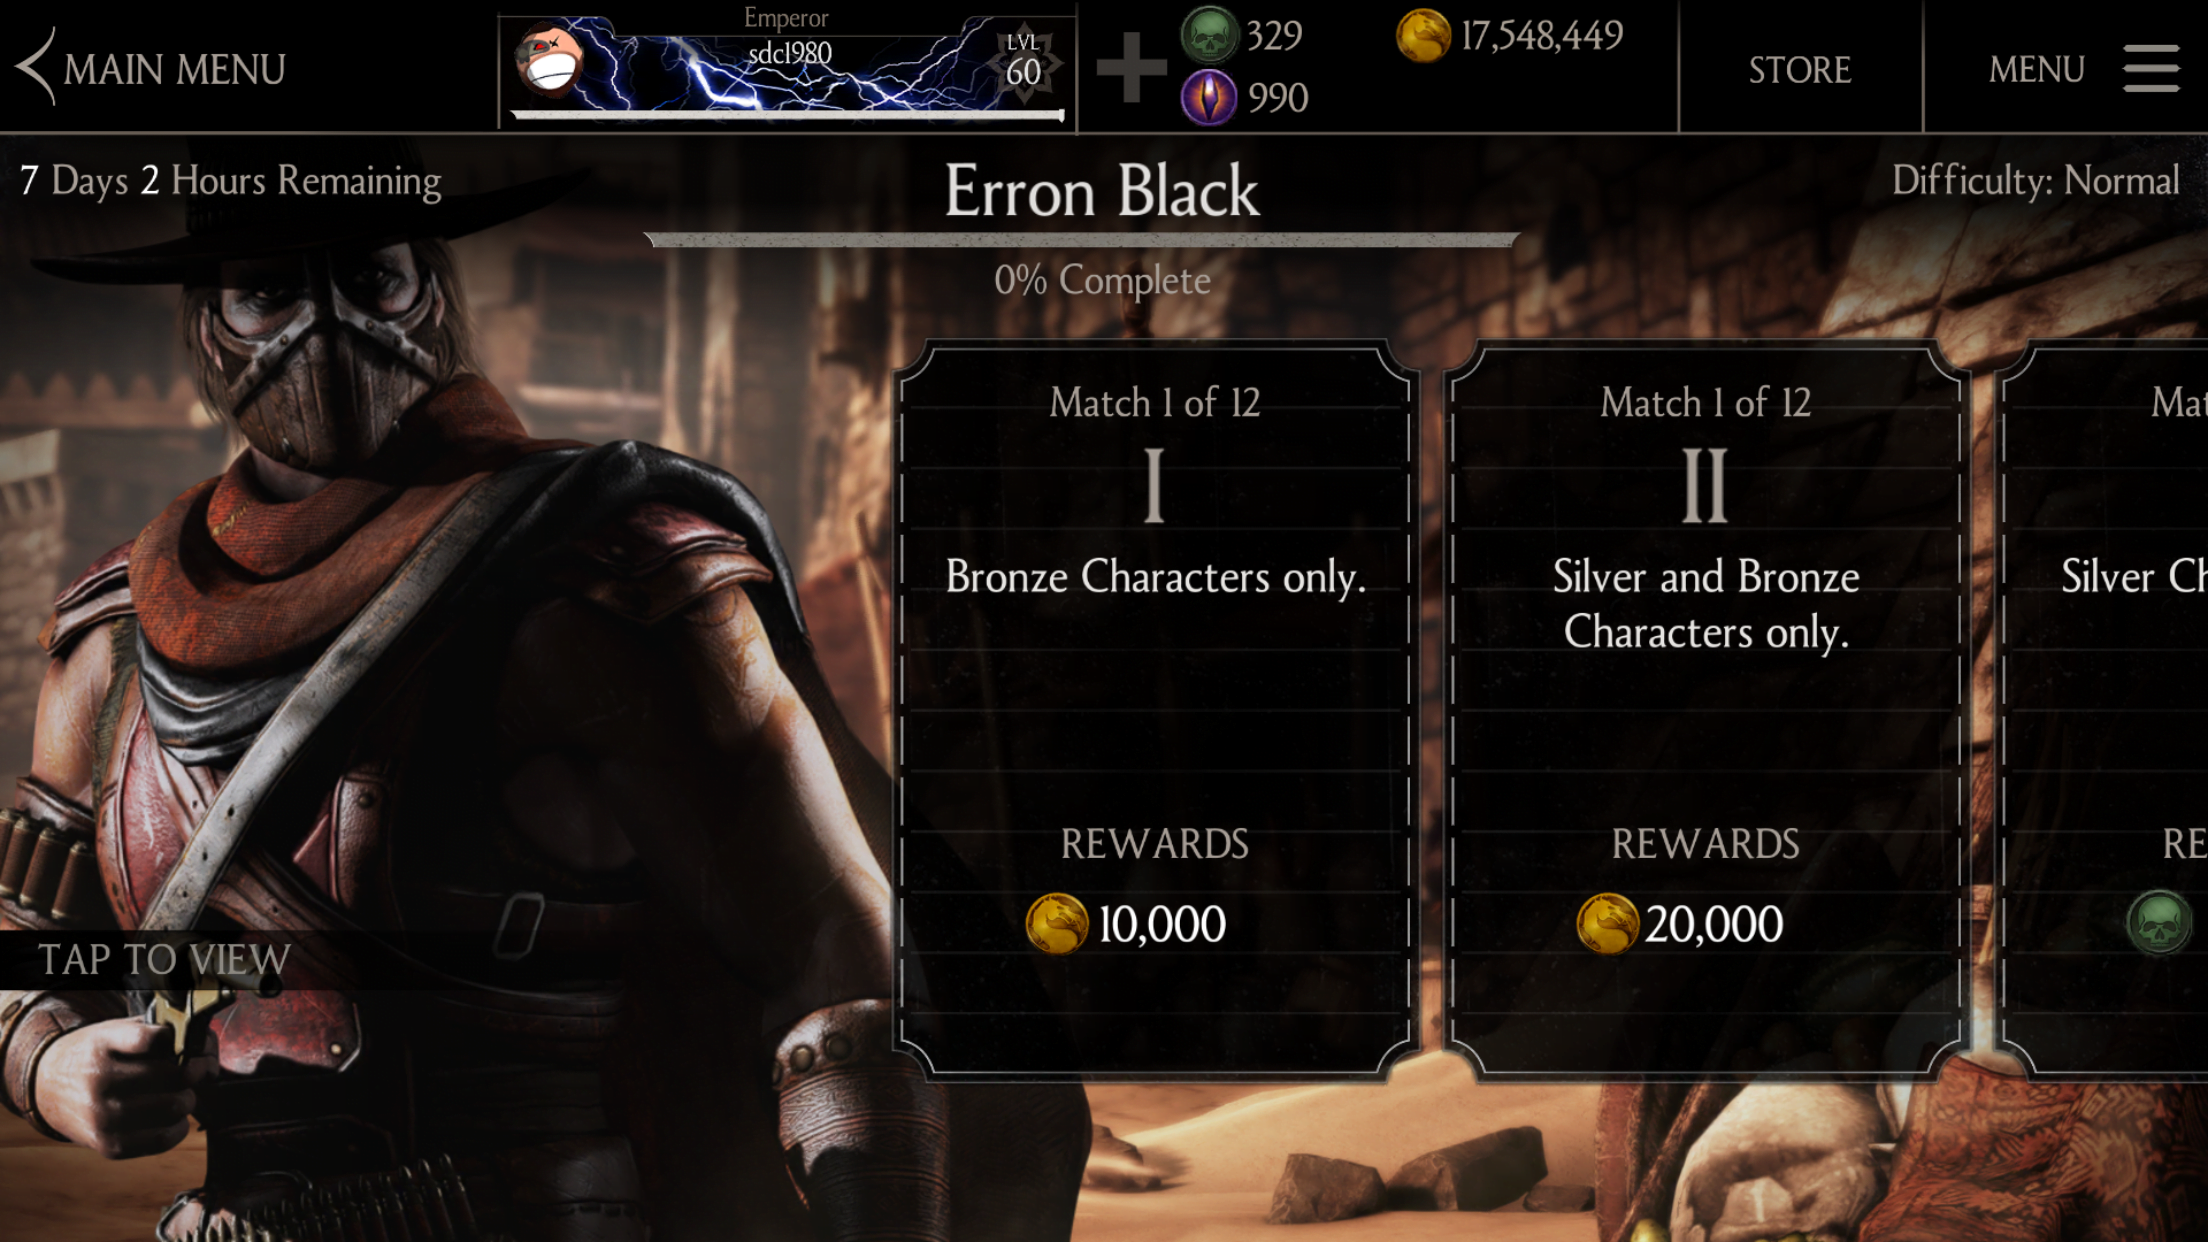 Erron Black Challenge